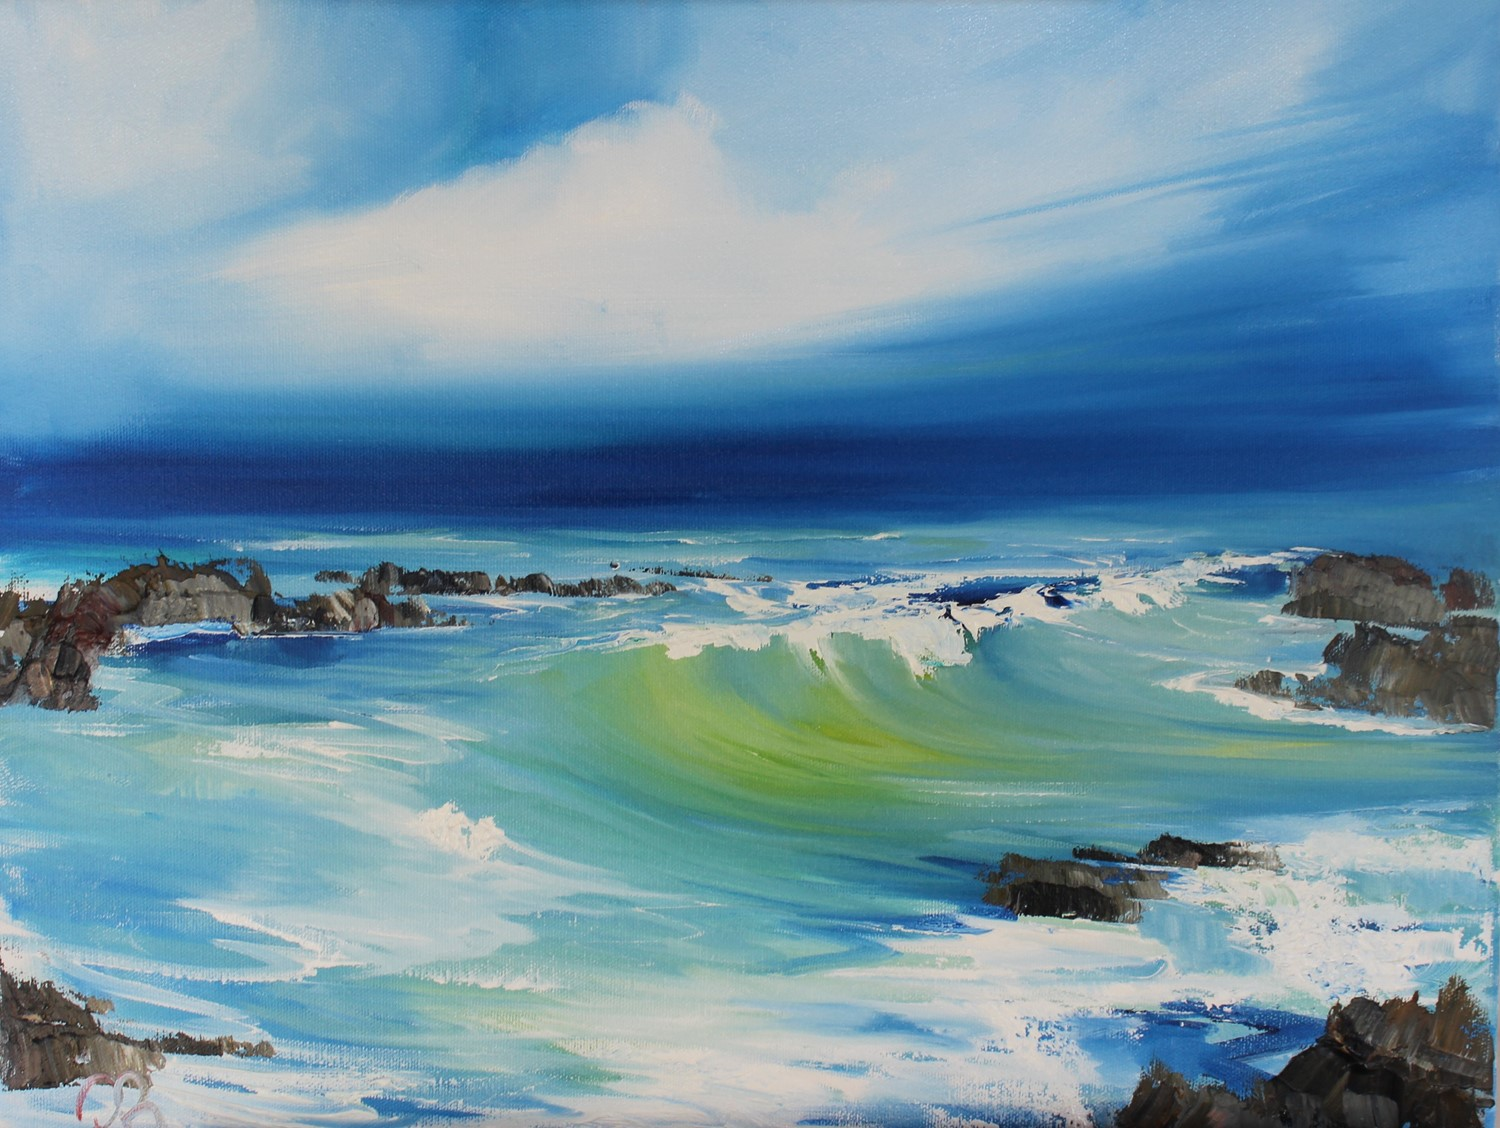 'Waves catching the light ' by artist Rosanne Barr